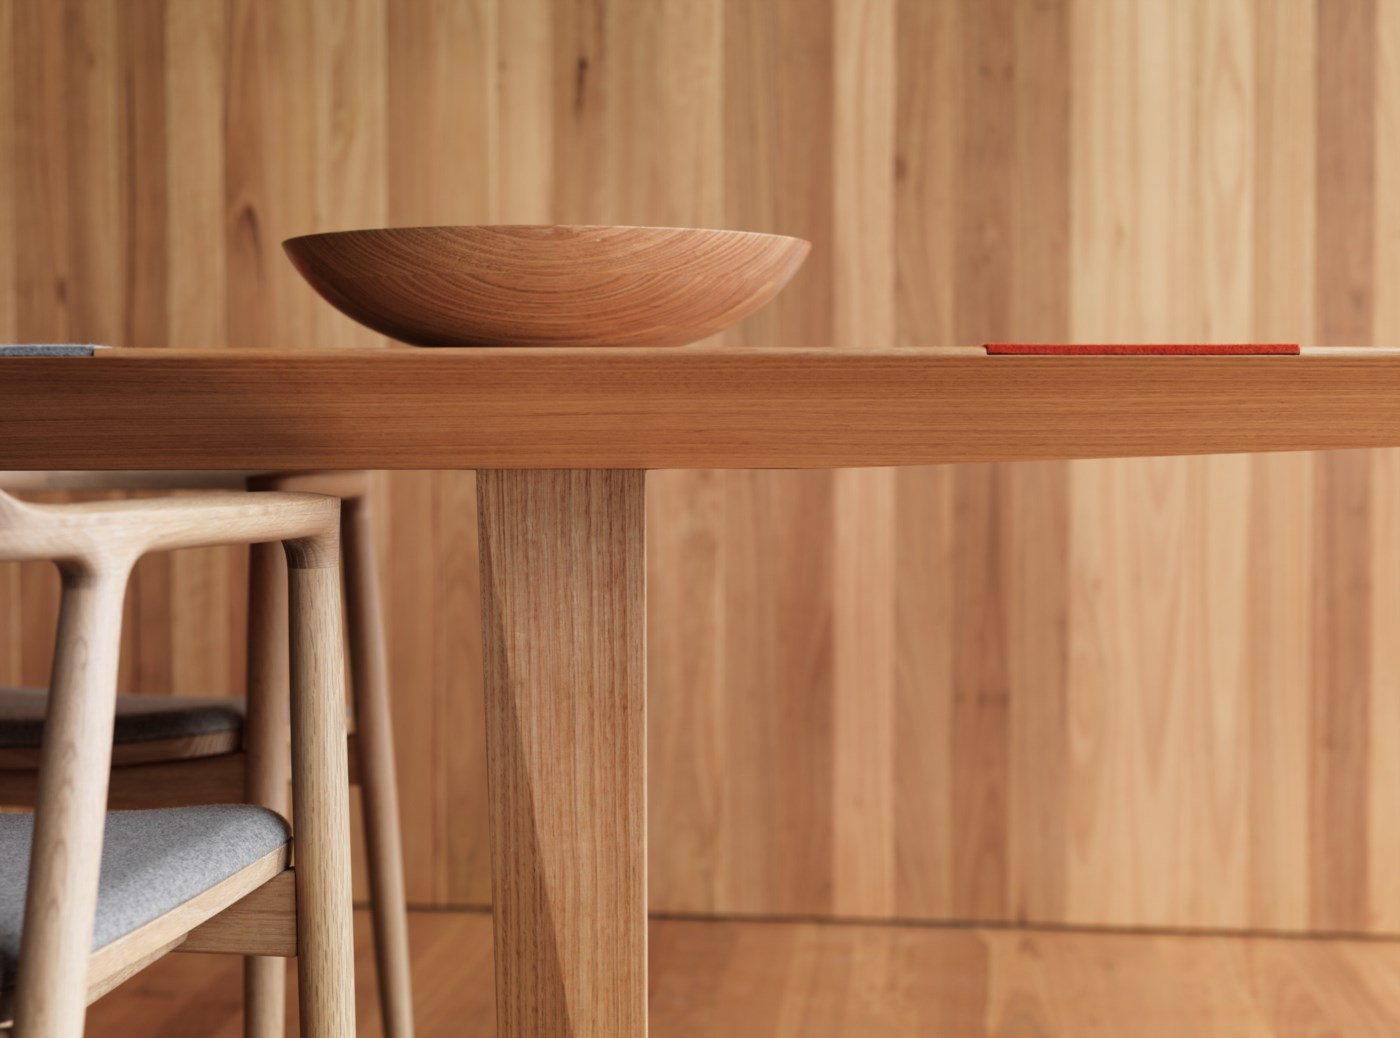 wood dining table and wood bowl, modern timber furniture